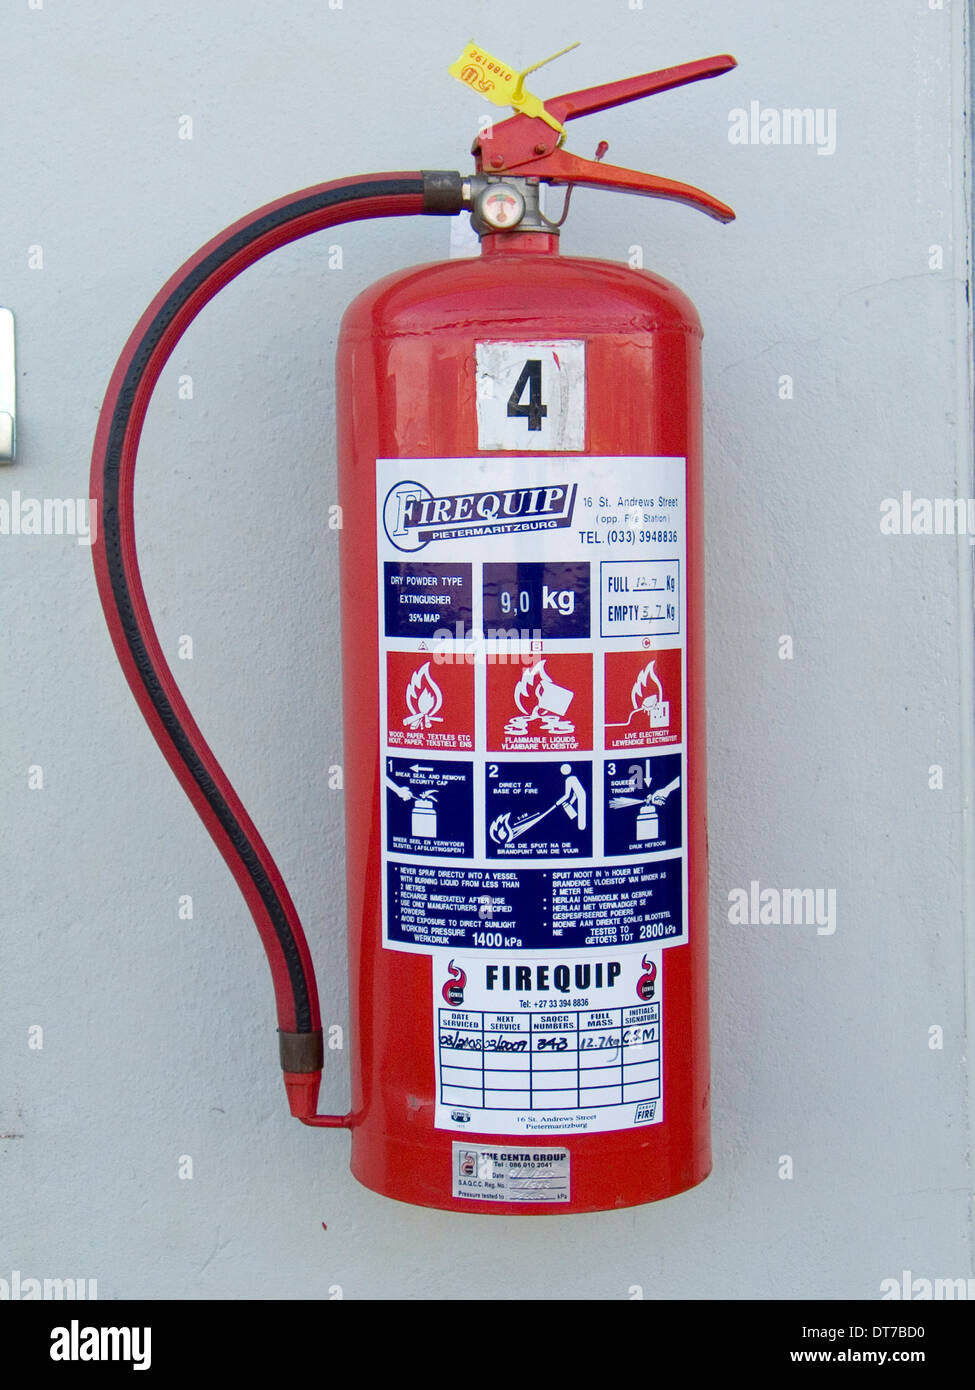 Extinguishers Stock Photos & Extinguishers Stock Images - Page 10 ...